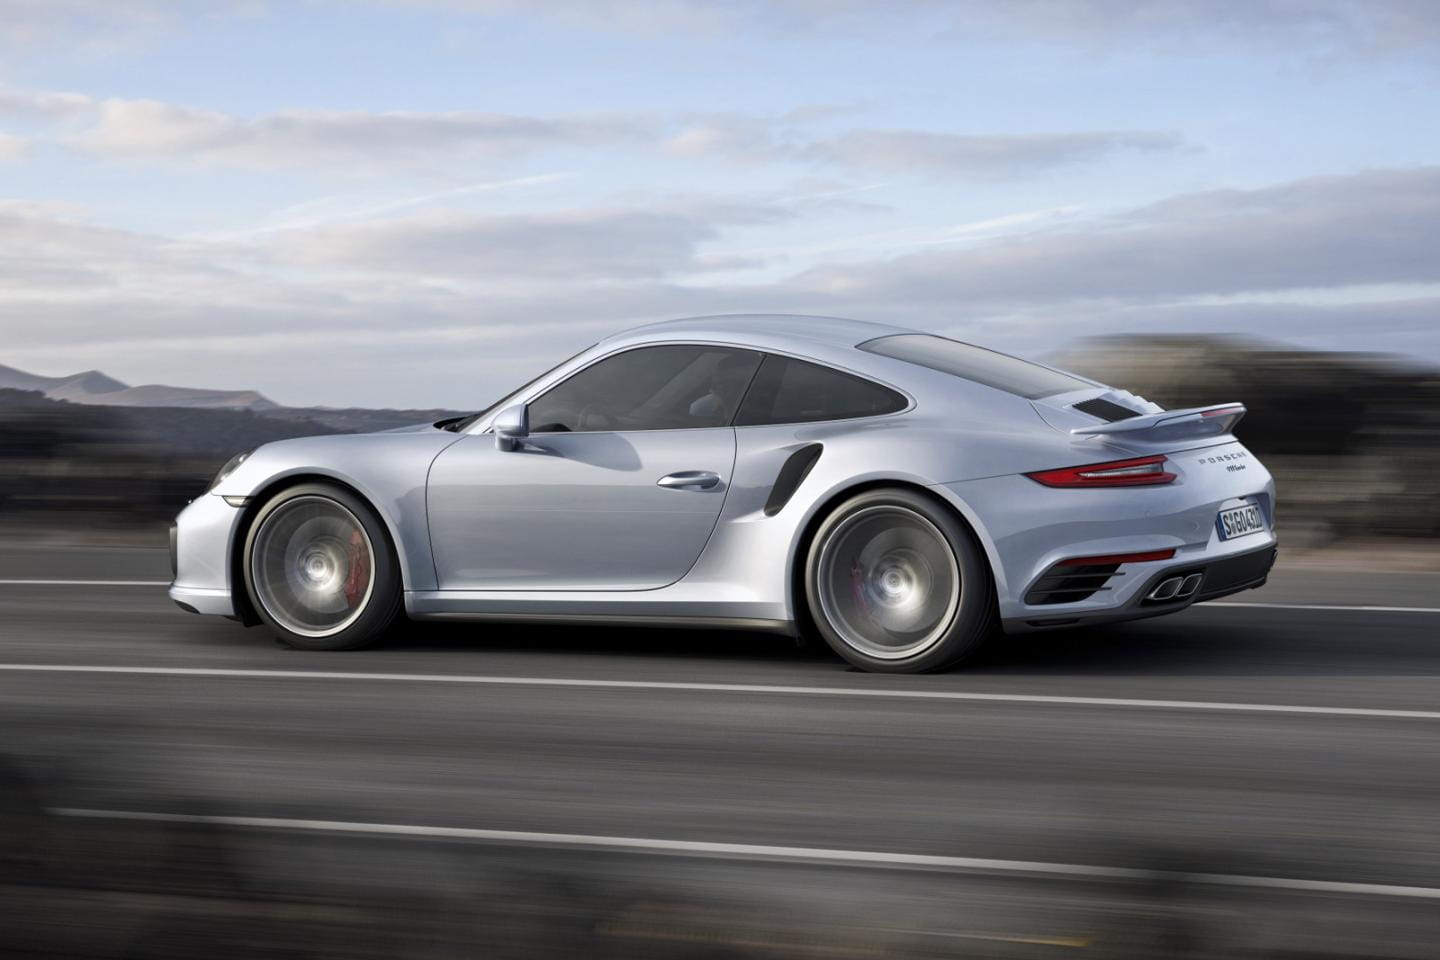 Porsche_911_Turbo_2016_DM_8